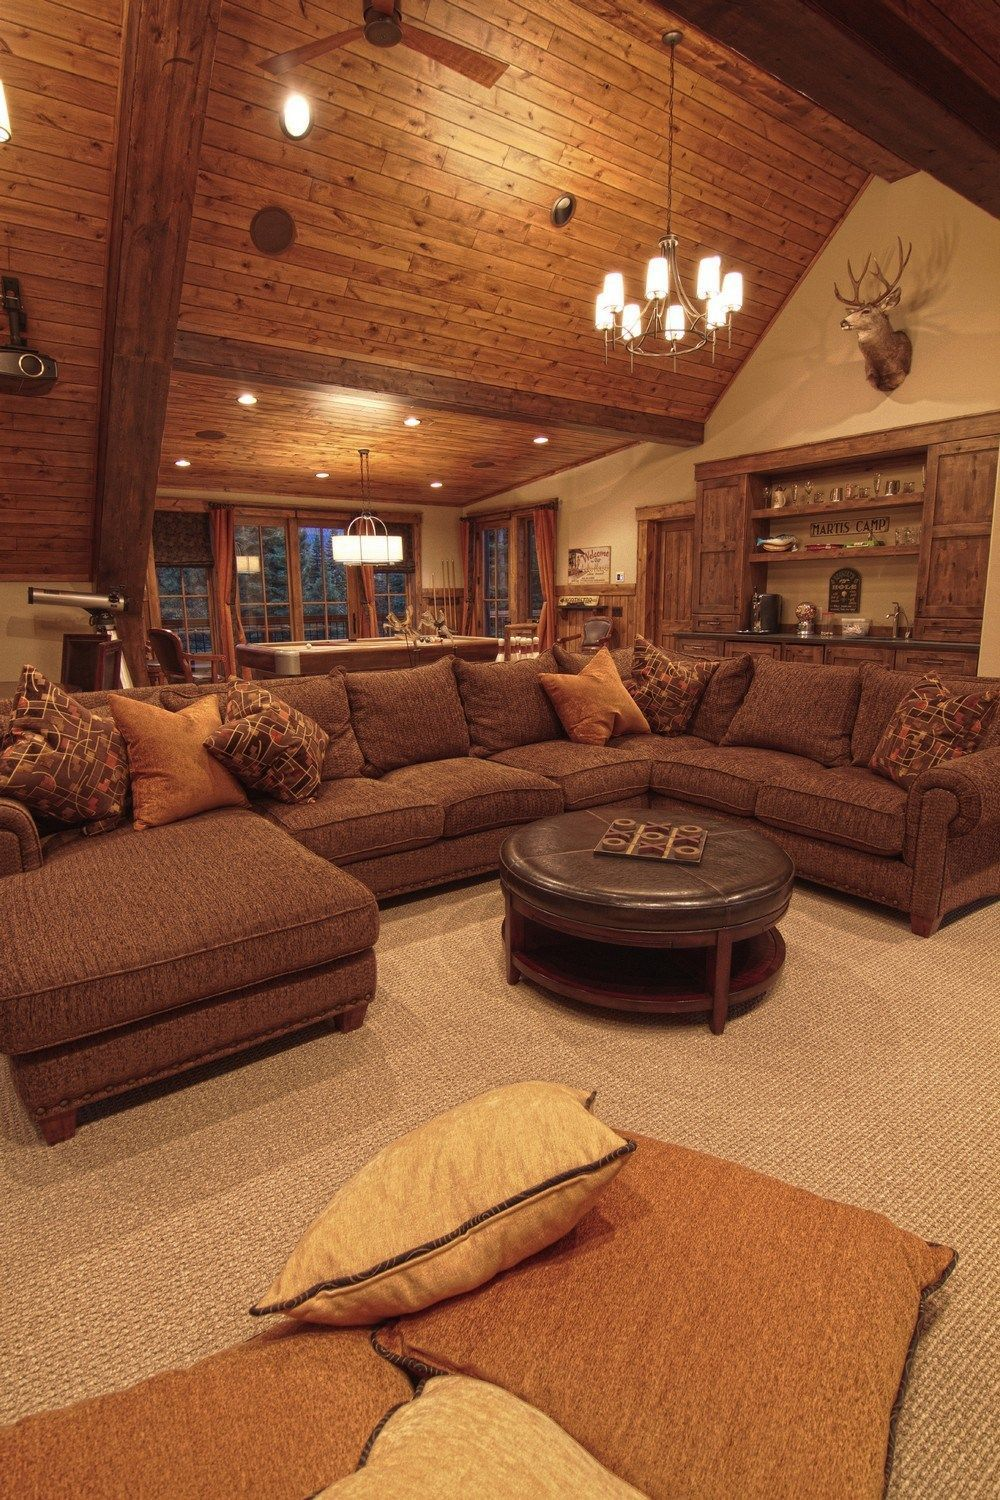 30 rustic log cabin design inspirations interiores de cabaa 30 rustic log cabin design inspirations wartaku aloadofball Image collections